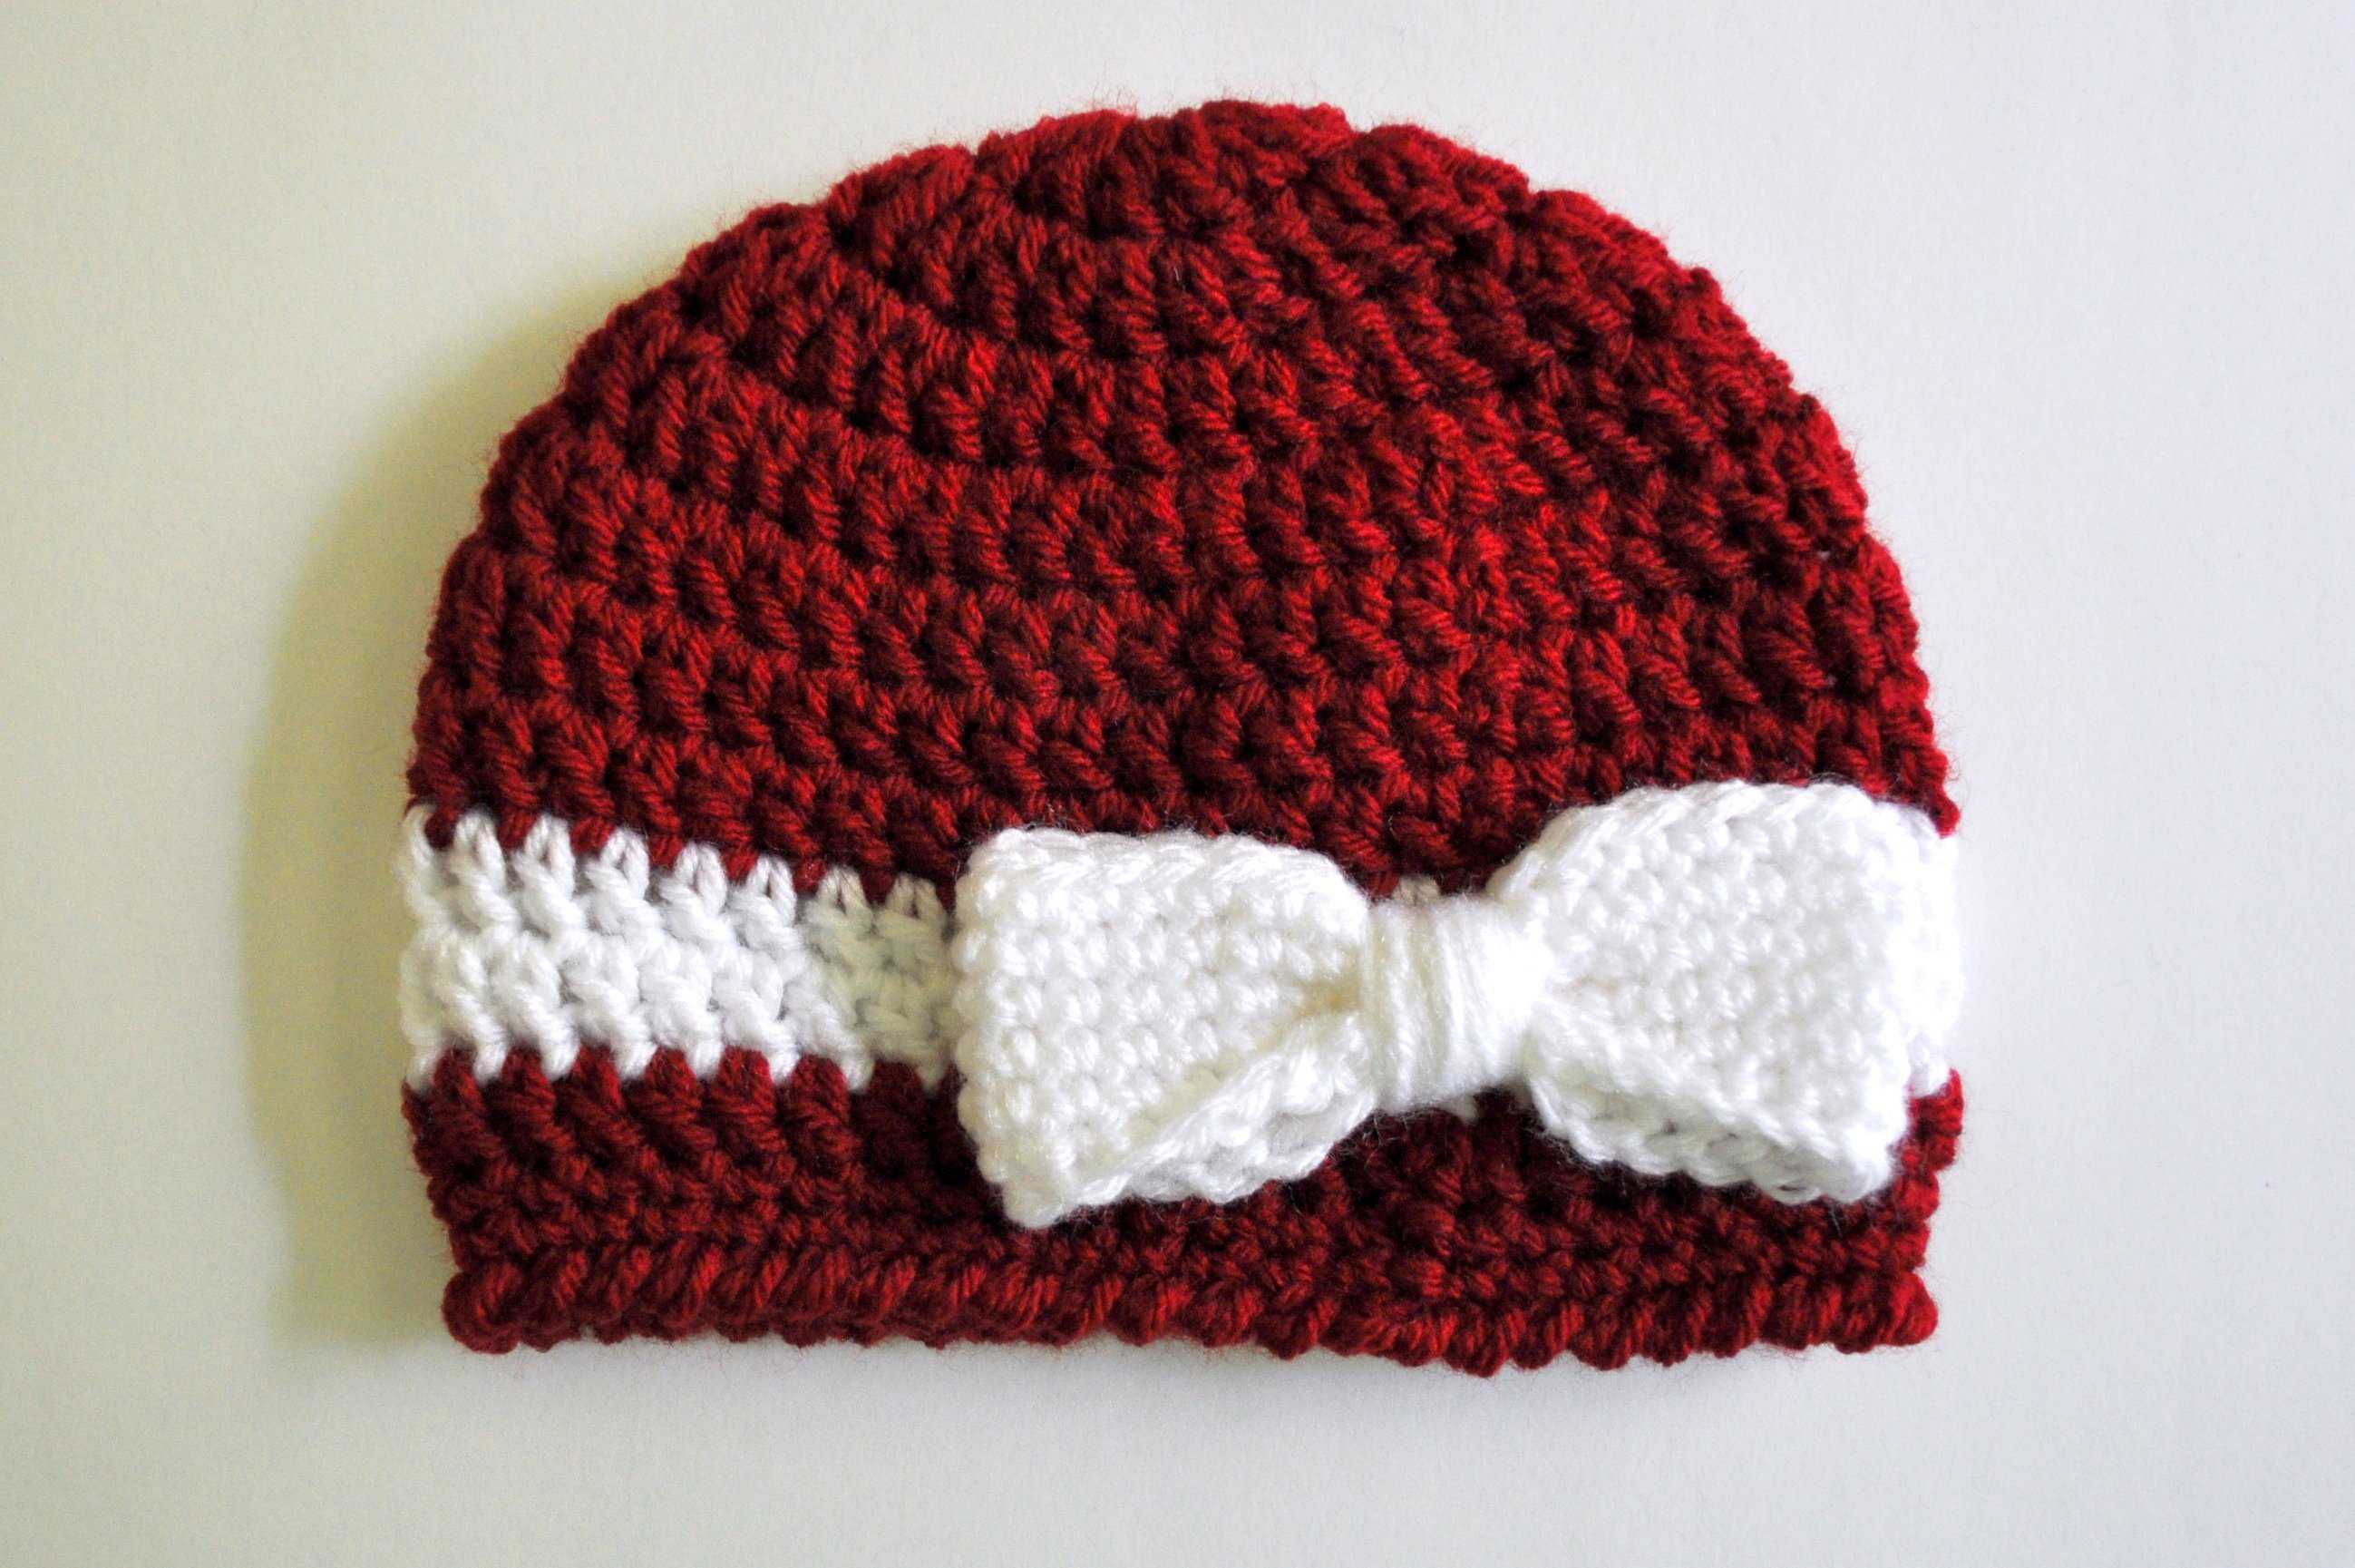 Crochet Pattern Helmet Hat : 25 Easy Crochet Bow Patterns Guide Patterns